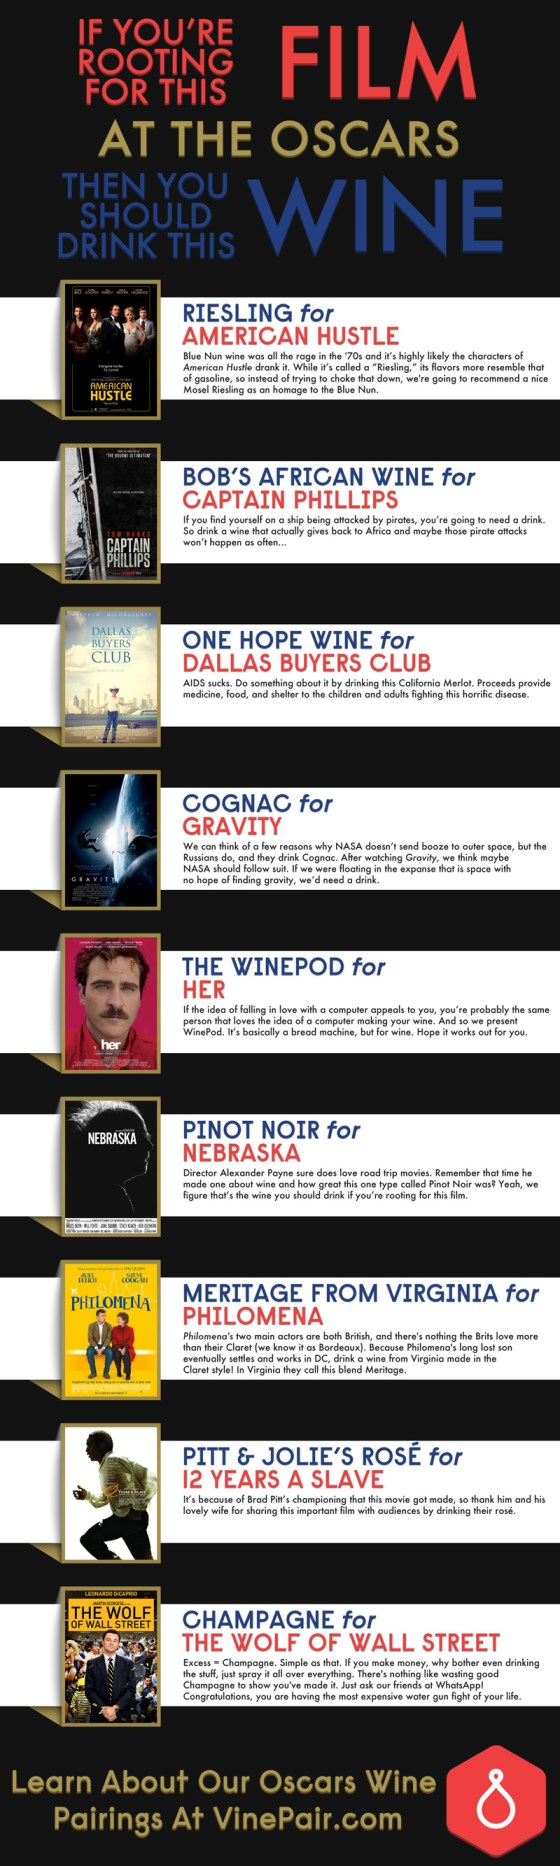 Wine Pairings For The 9 Best Picture Nominees - Oscars 2014